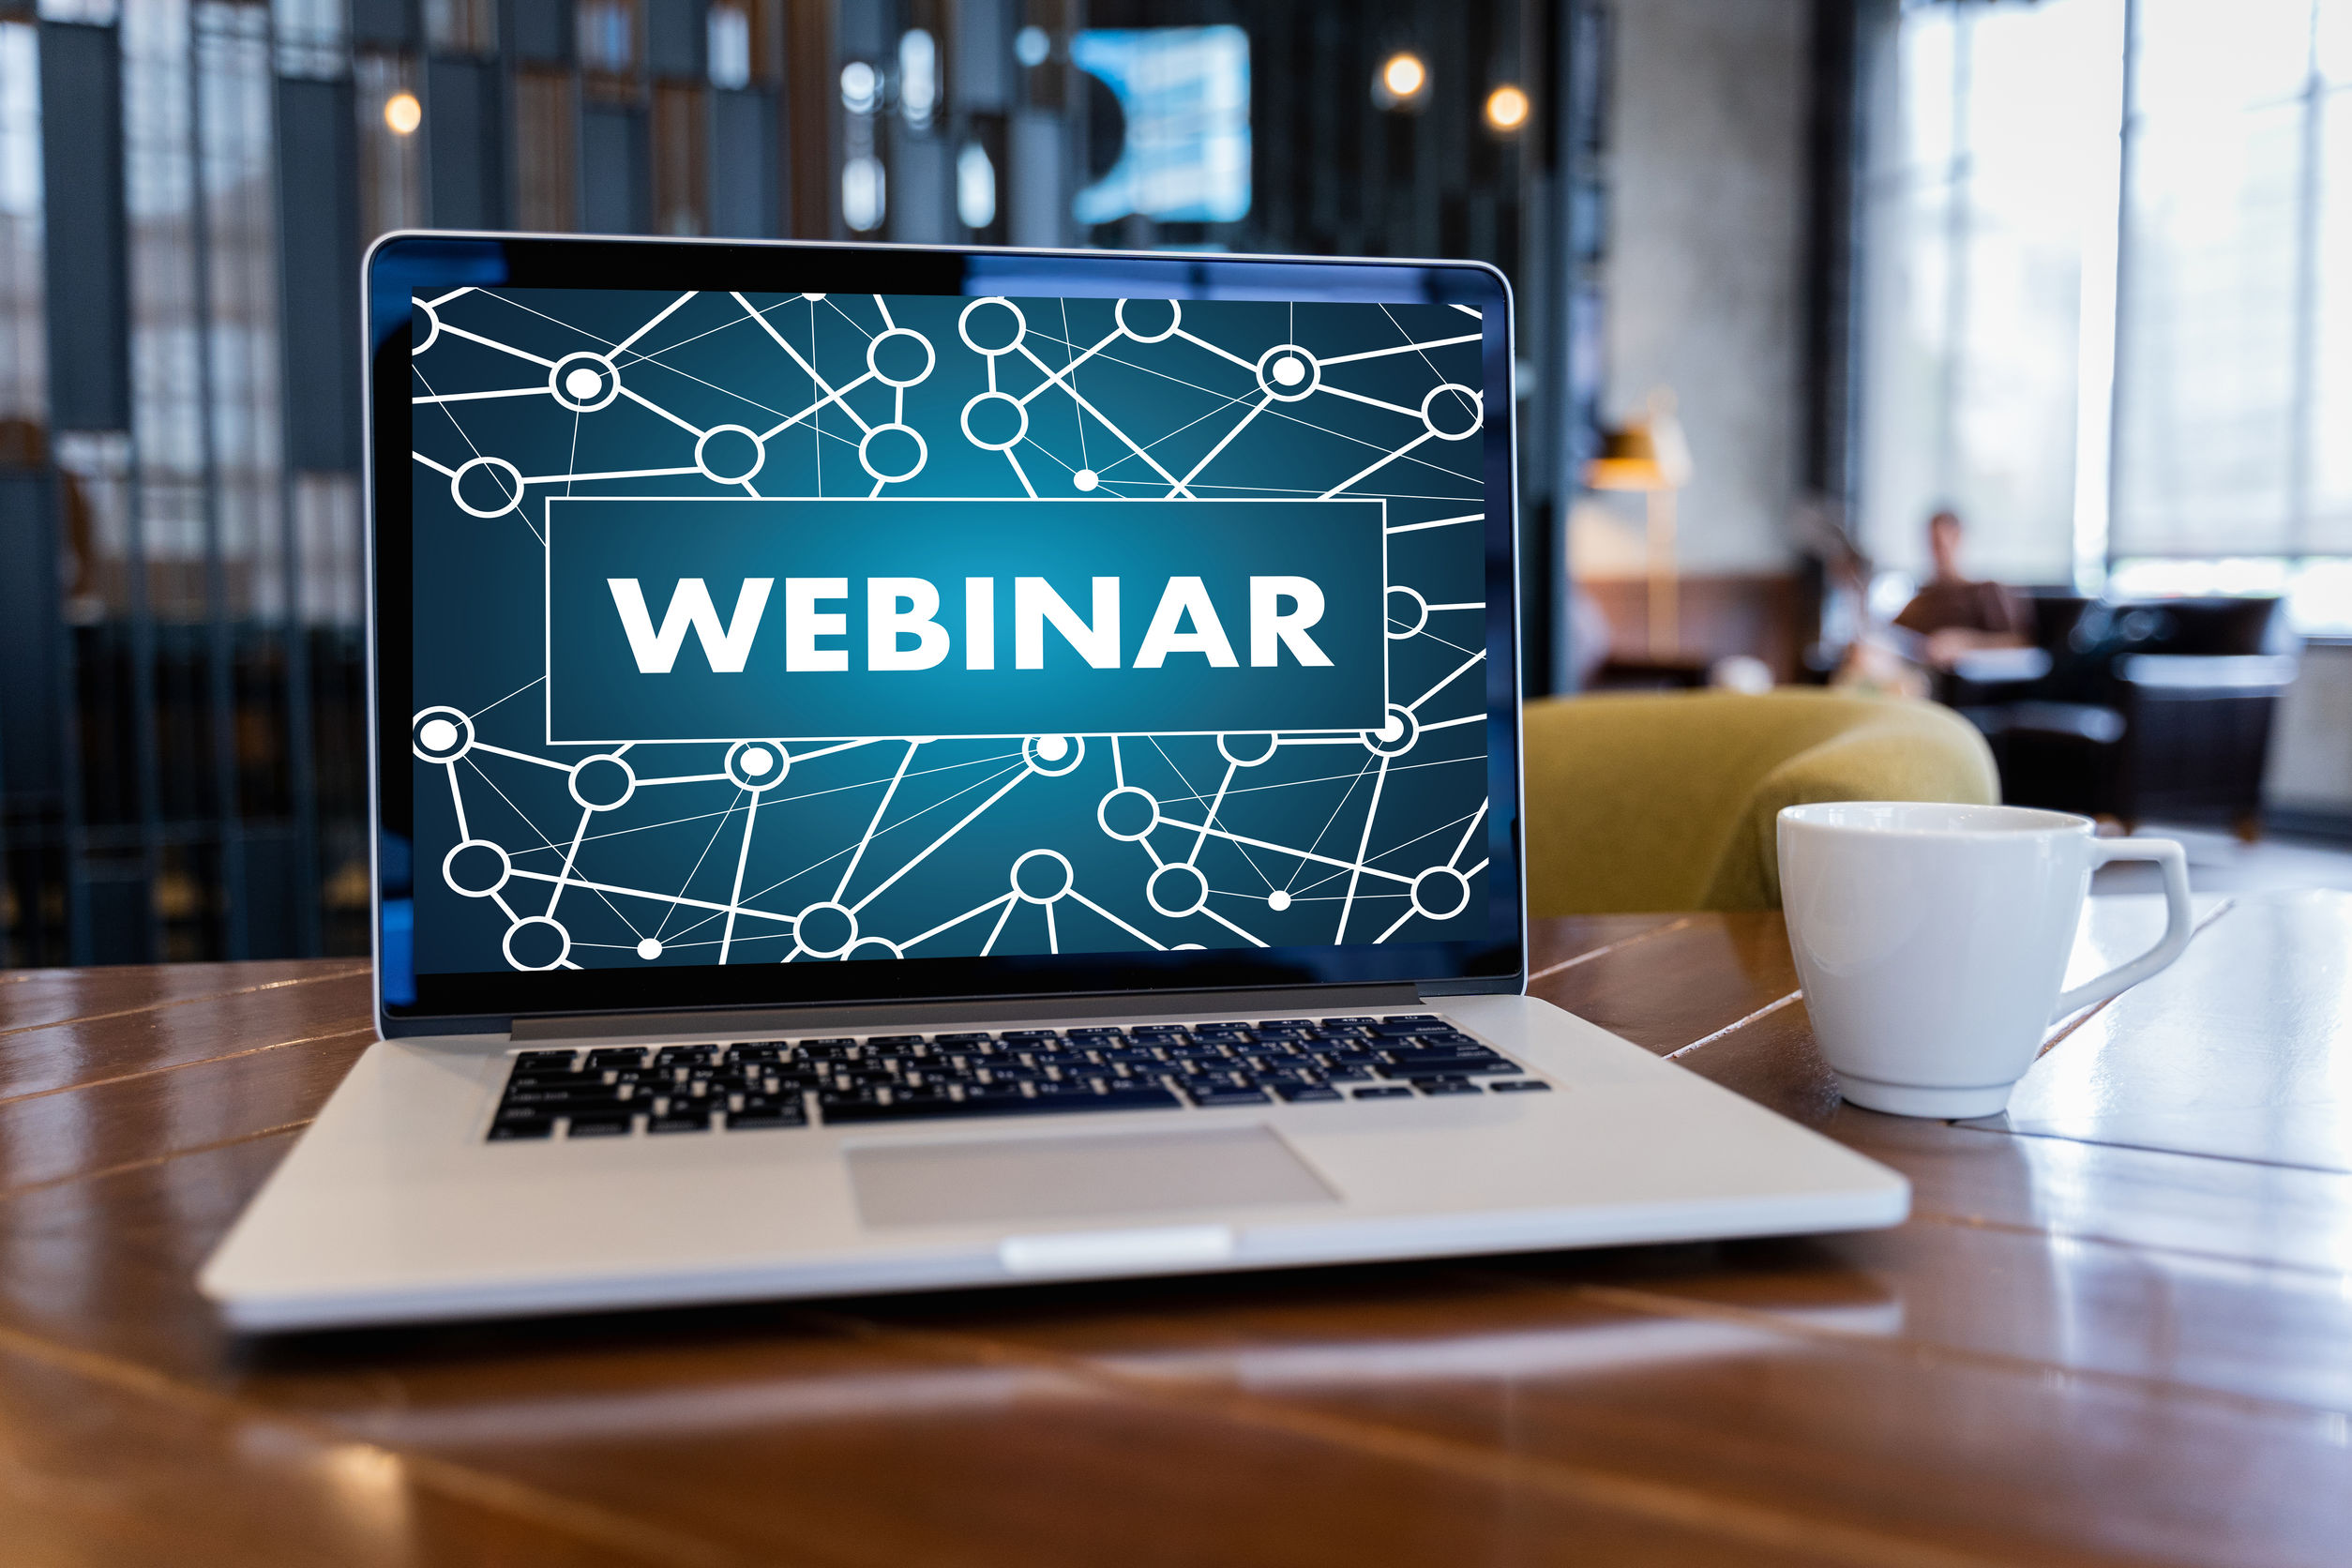 Increase Your Operational Efficiency with Our March Webinars